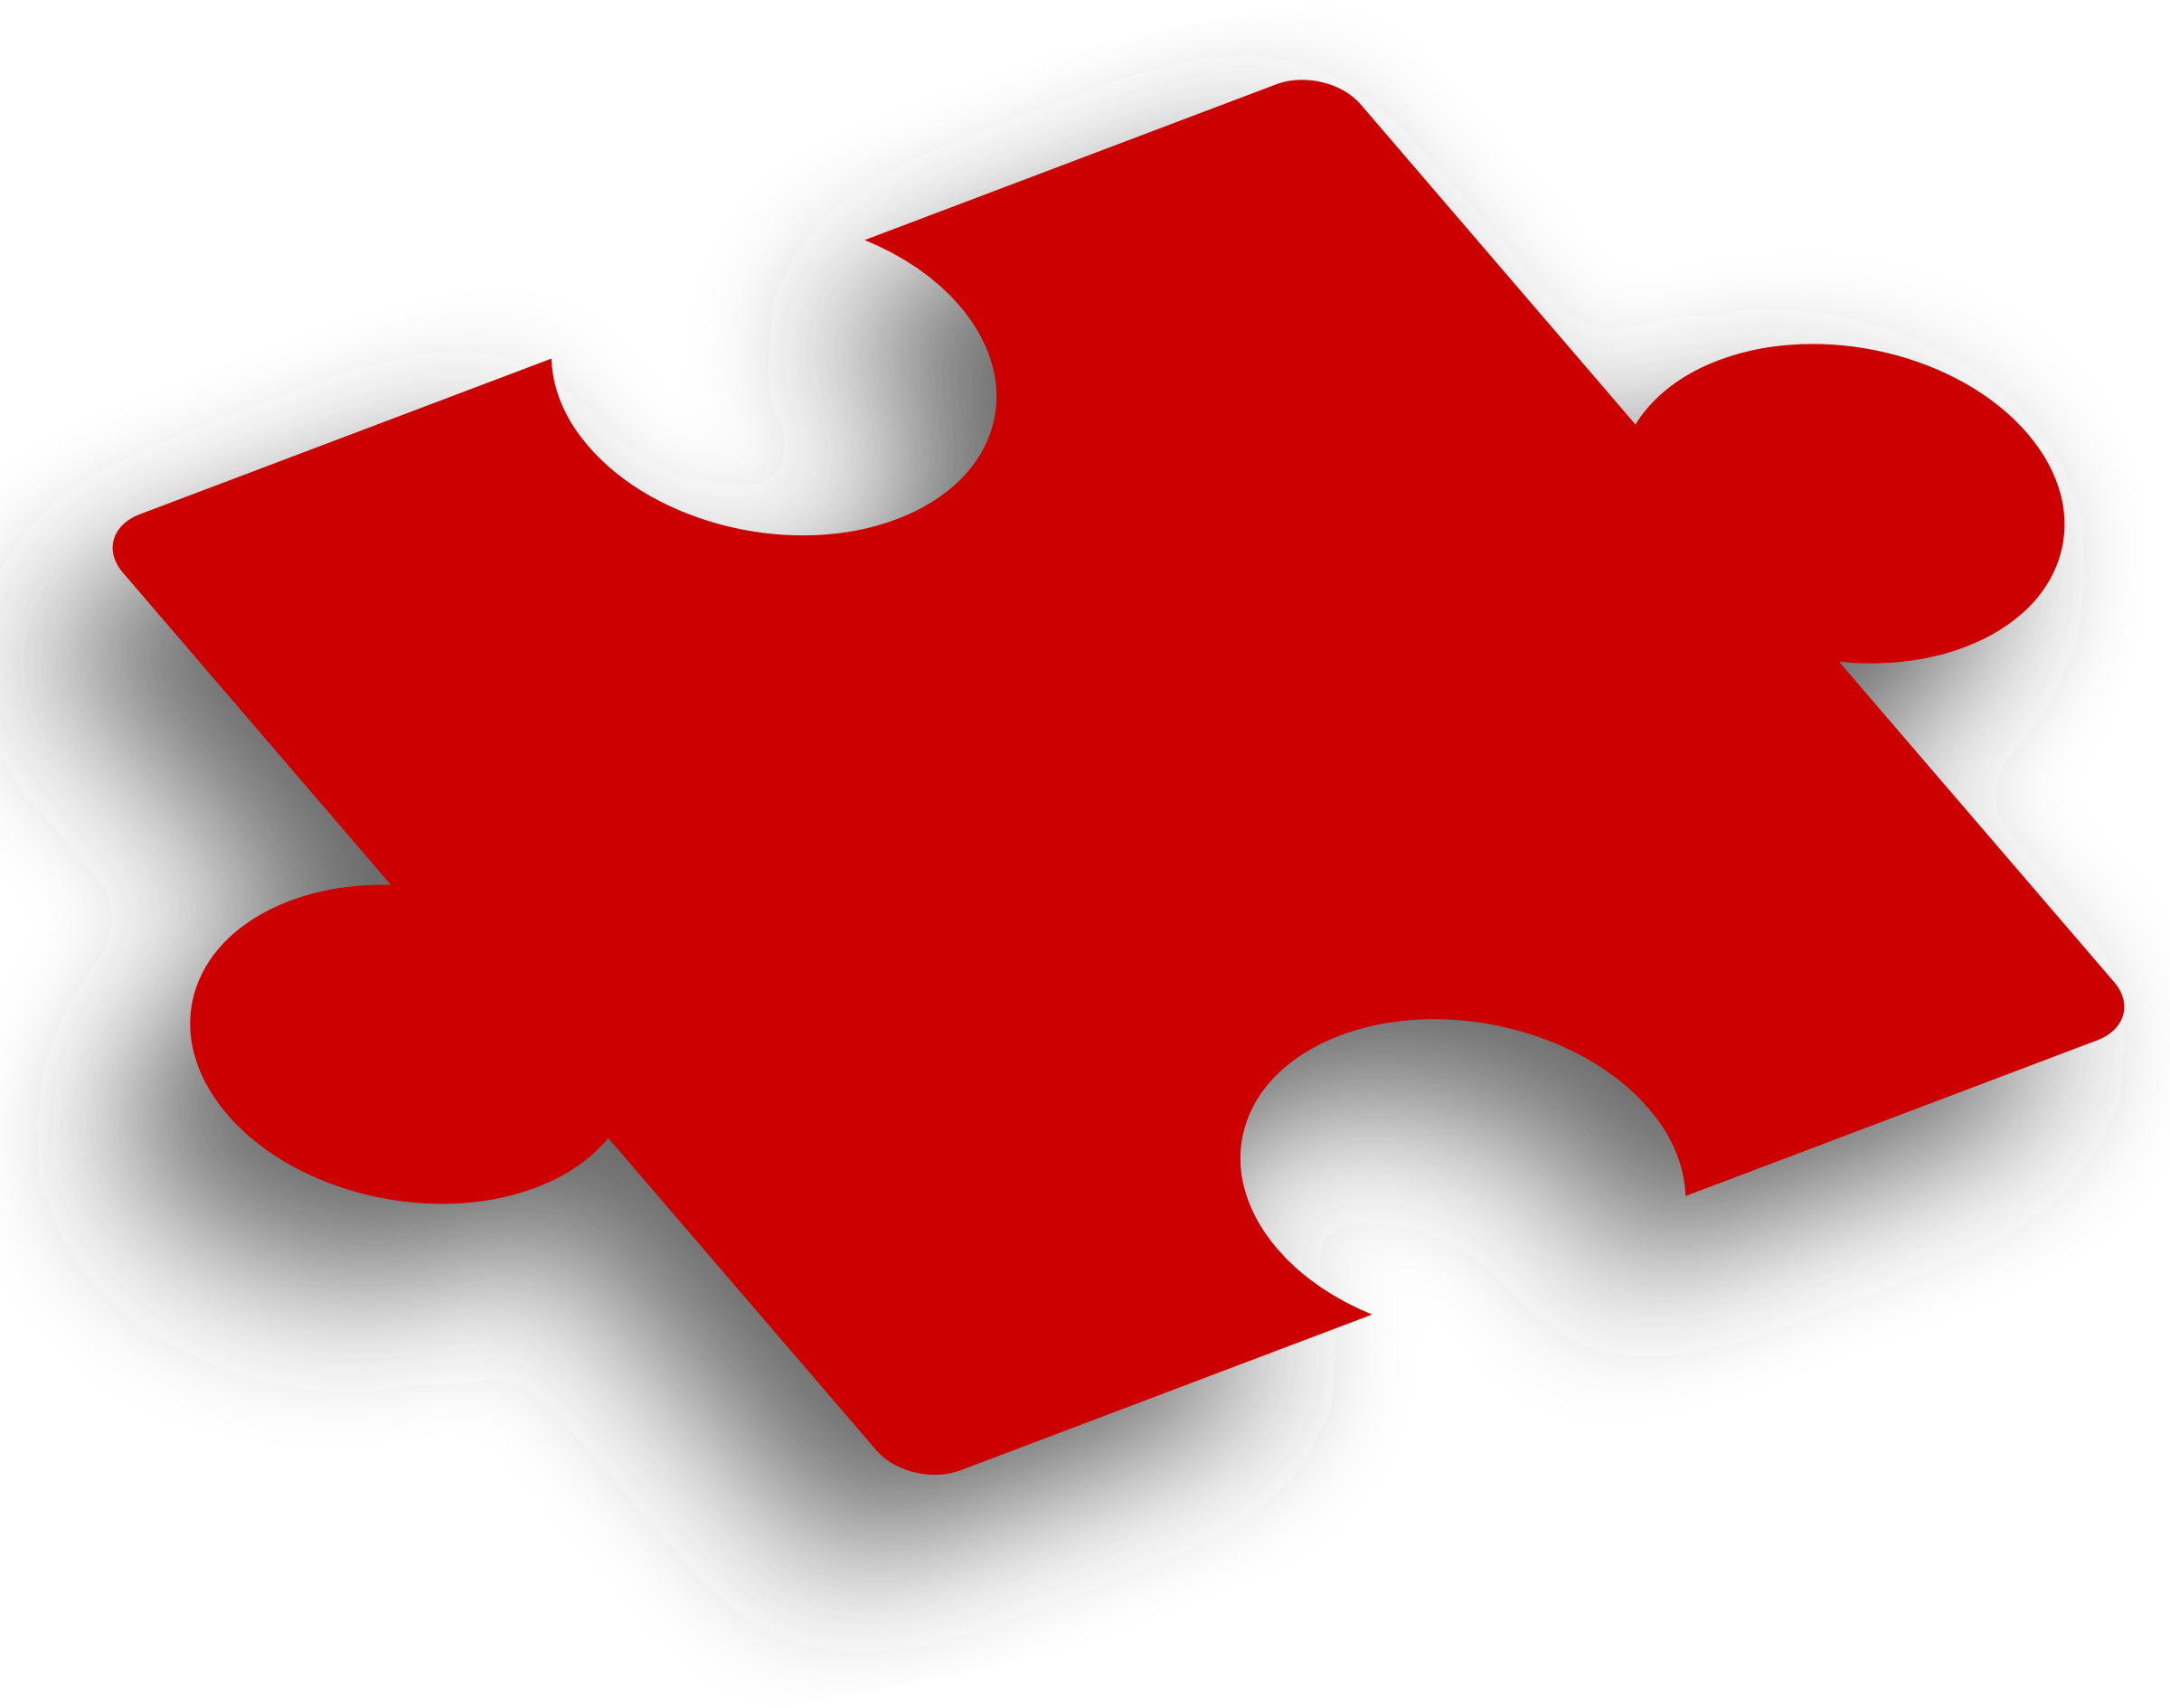 Clipart - Puzzle Piece Red